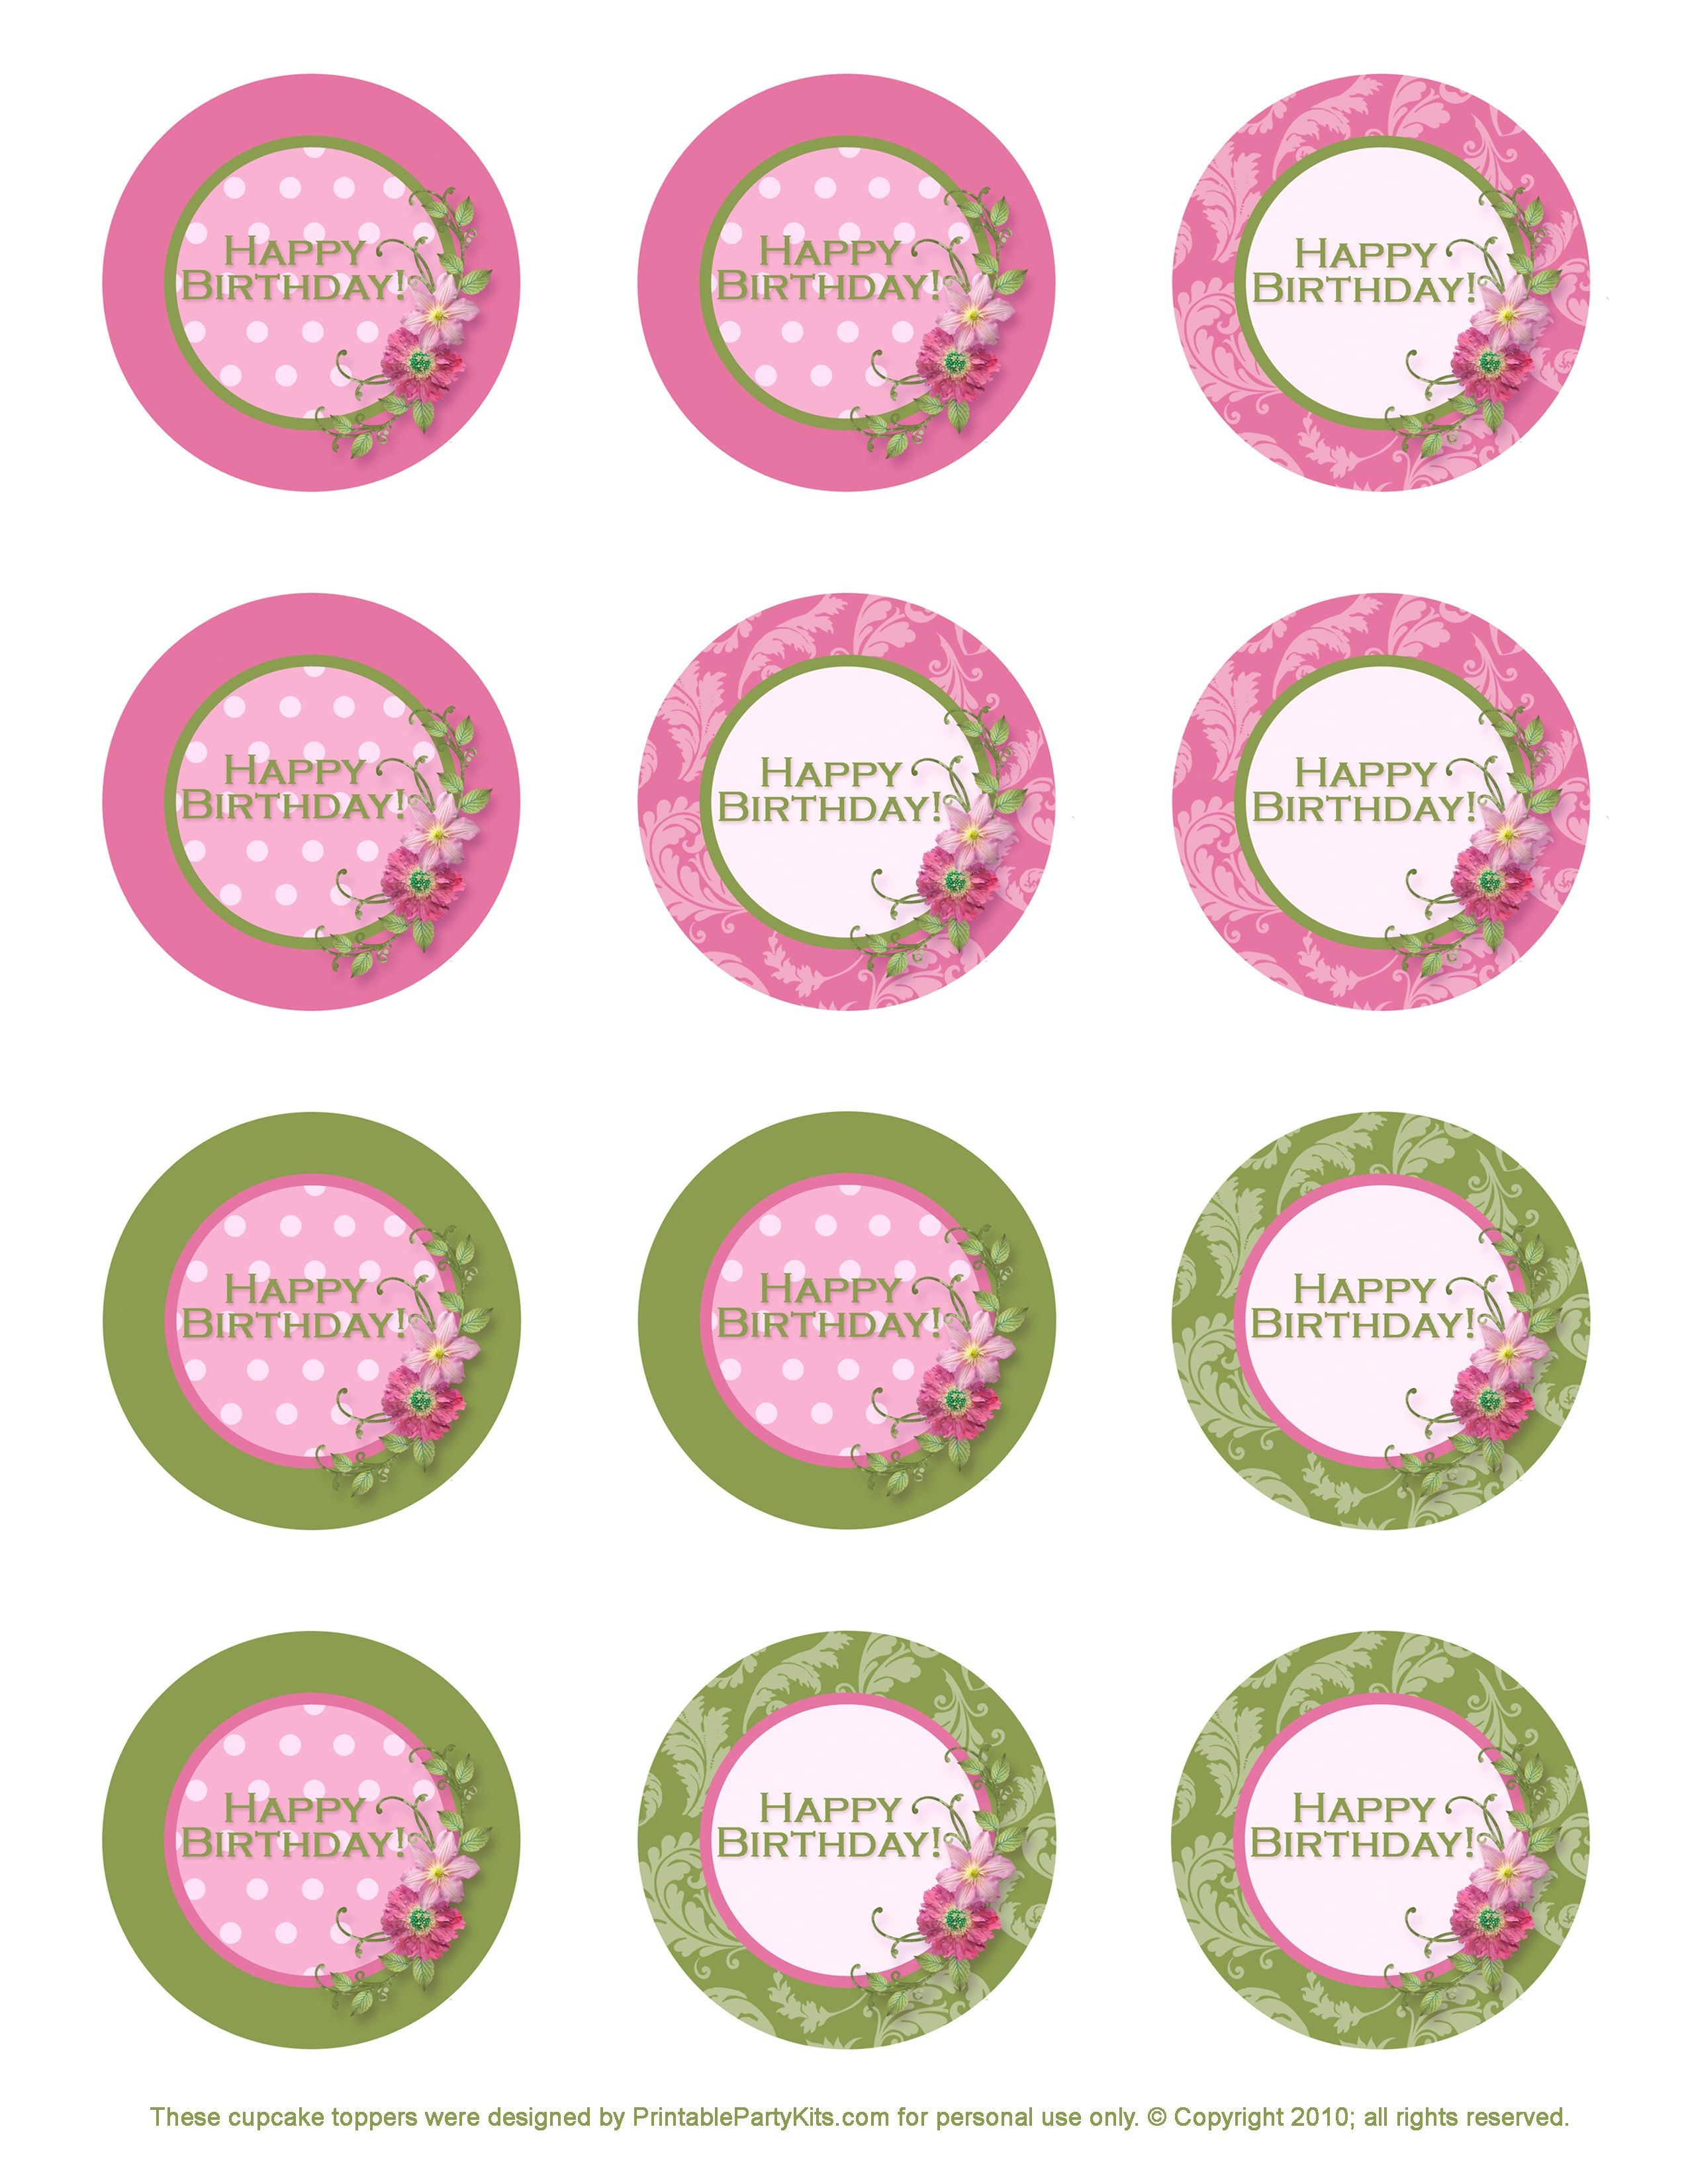 Free Printable Birthday Cupcake Toppers | Crafts | Birthday Cupcakes - Free Printable Cupcake Toppers